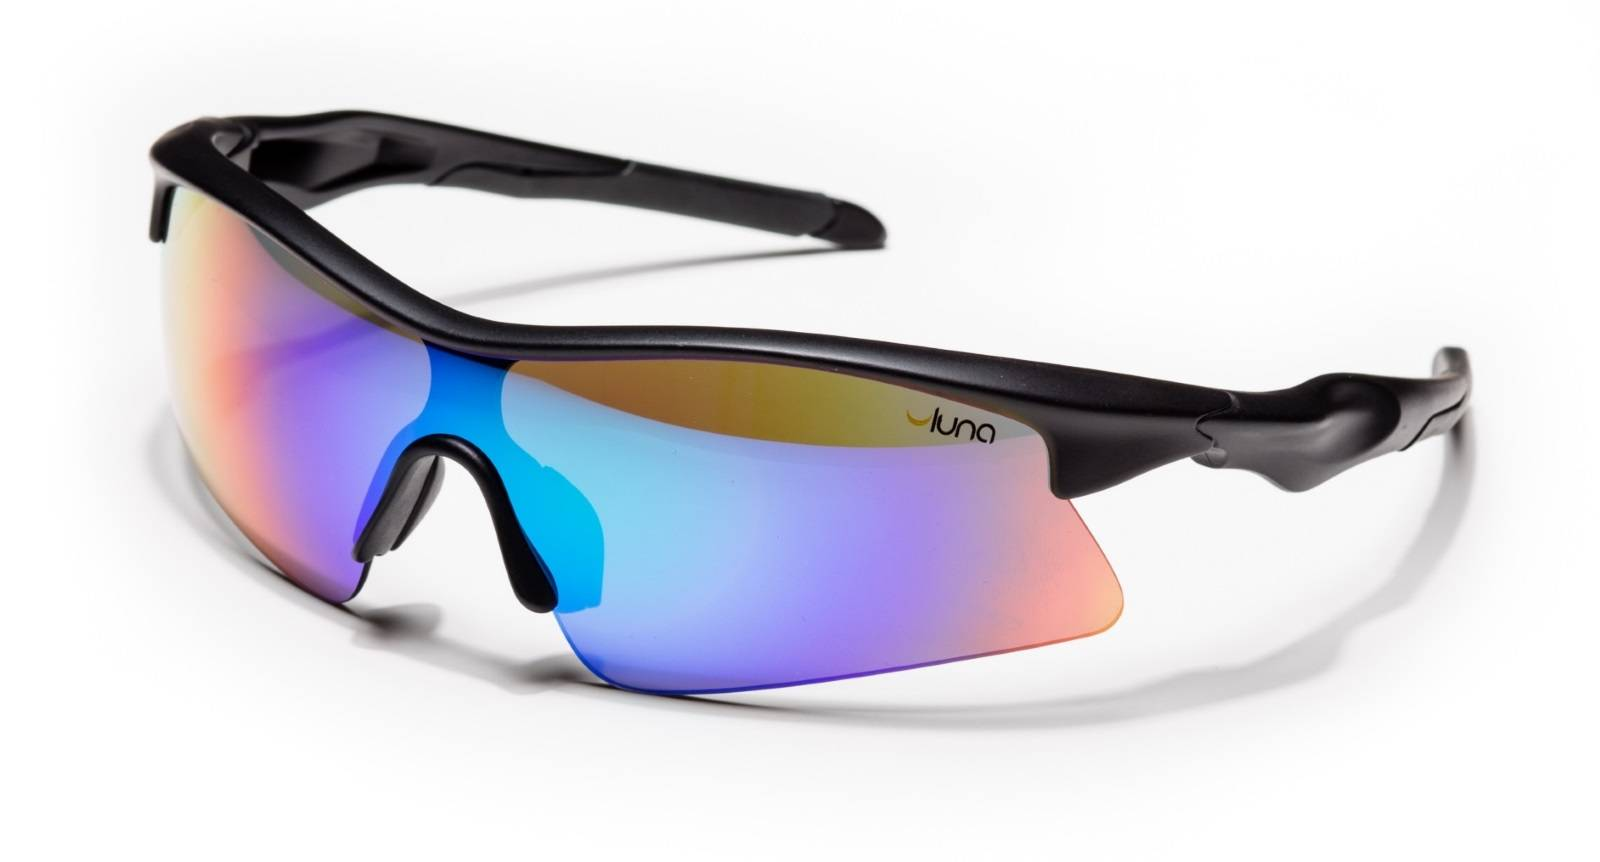 Luna Glasses Luna Eclipse Running Cycling Sunglasses with Hard Protective Case (Mirrored Aquamarine Lenses, Black Frame)